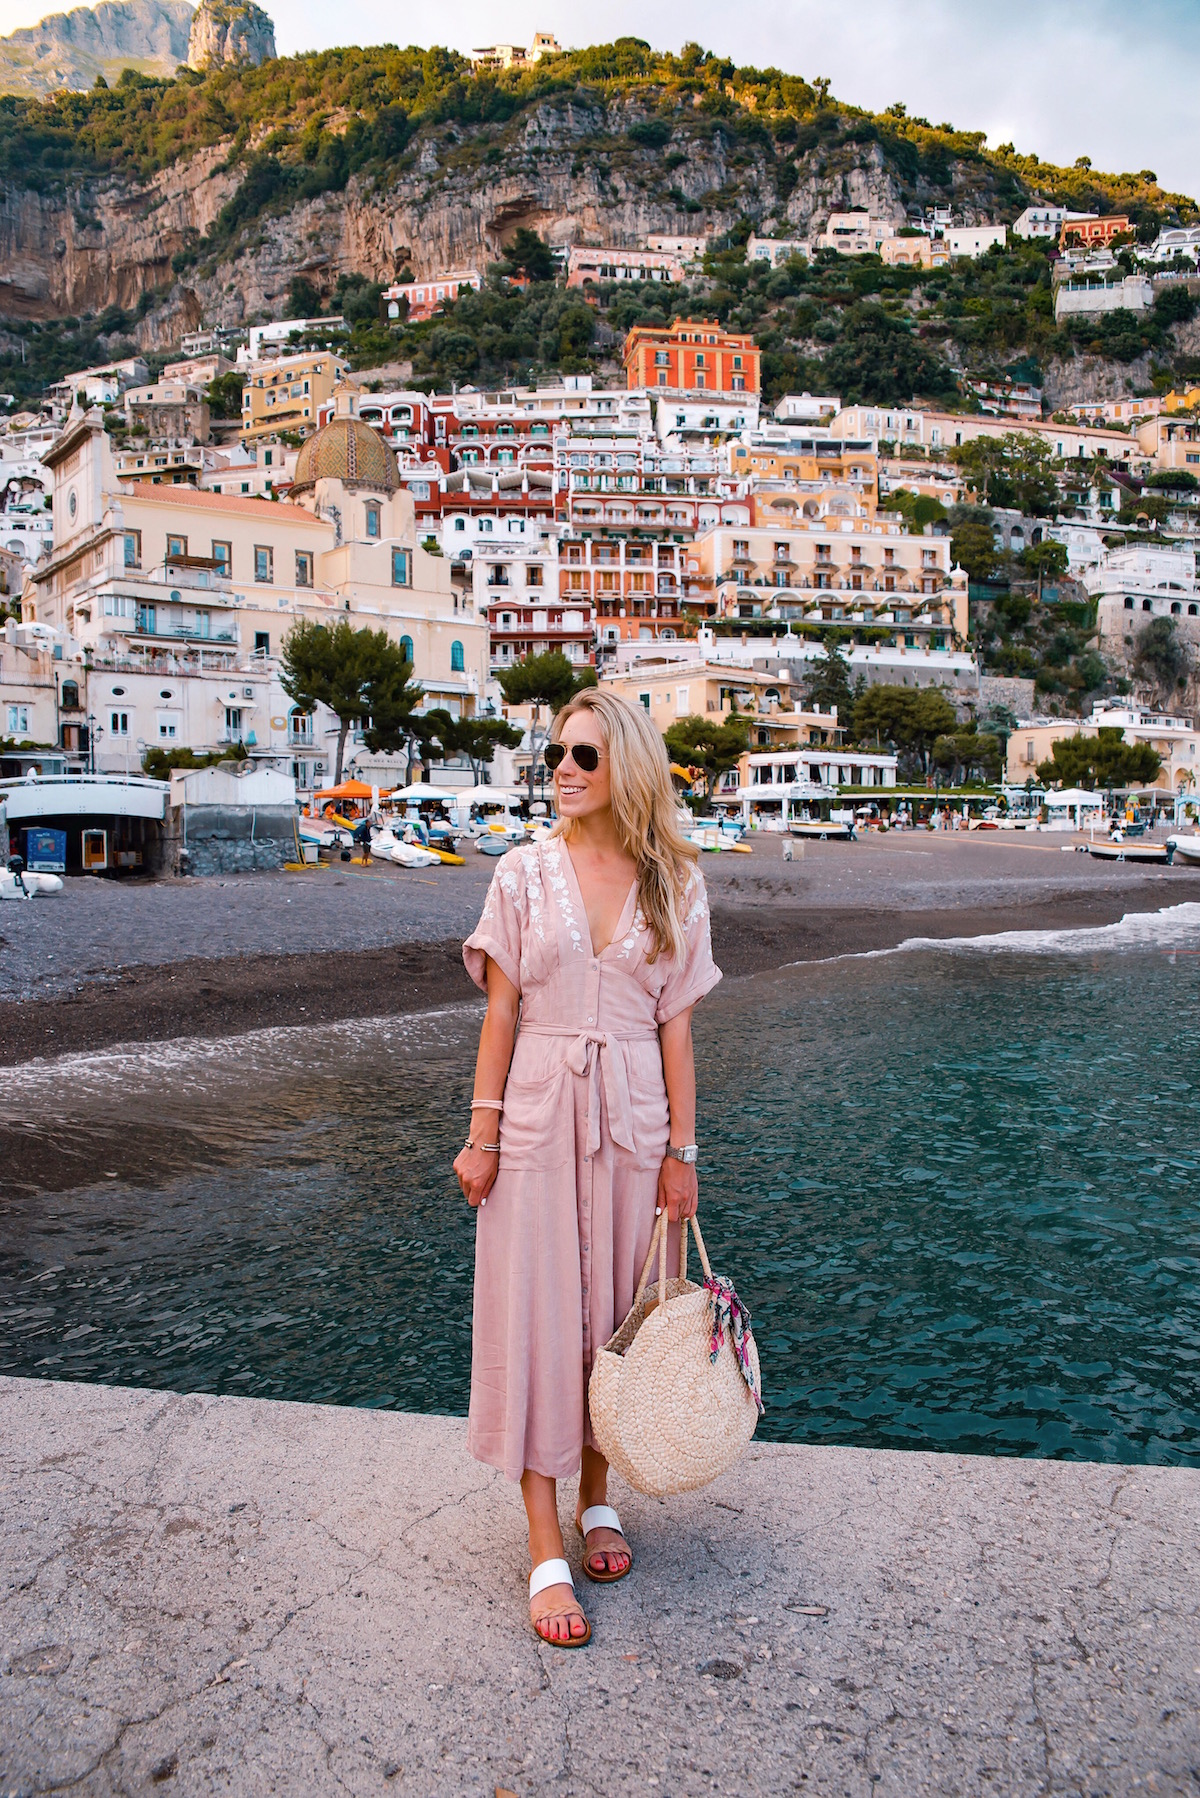 7 day amalfi coast itinerary travel guide katie s bliss